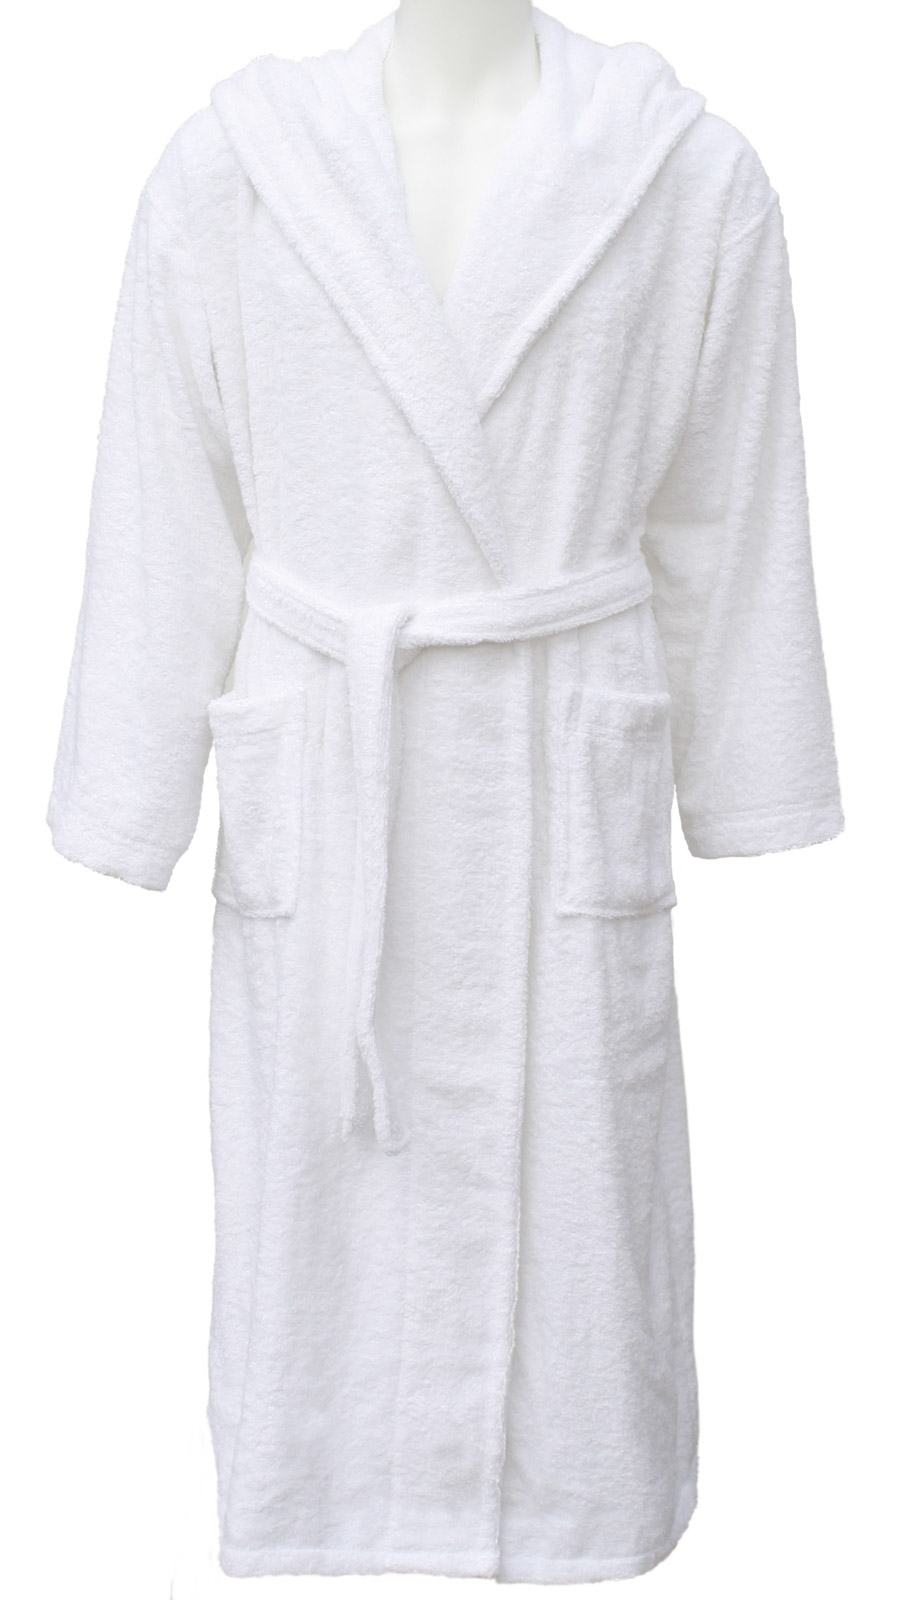 Bath Robes Sadaf Brothers Industries